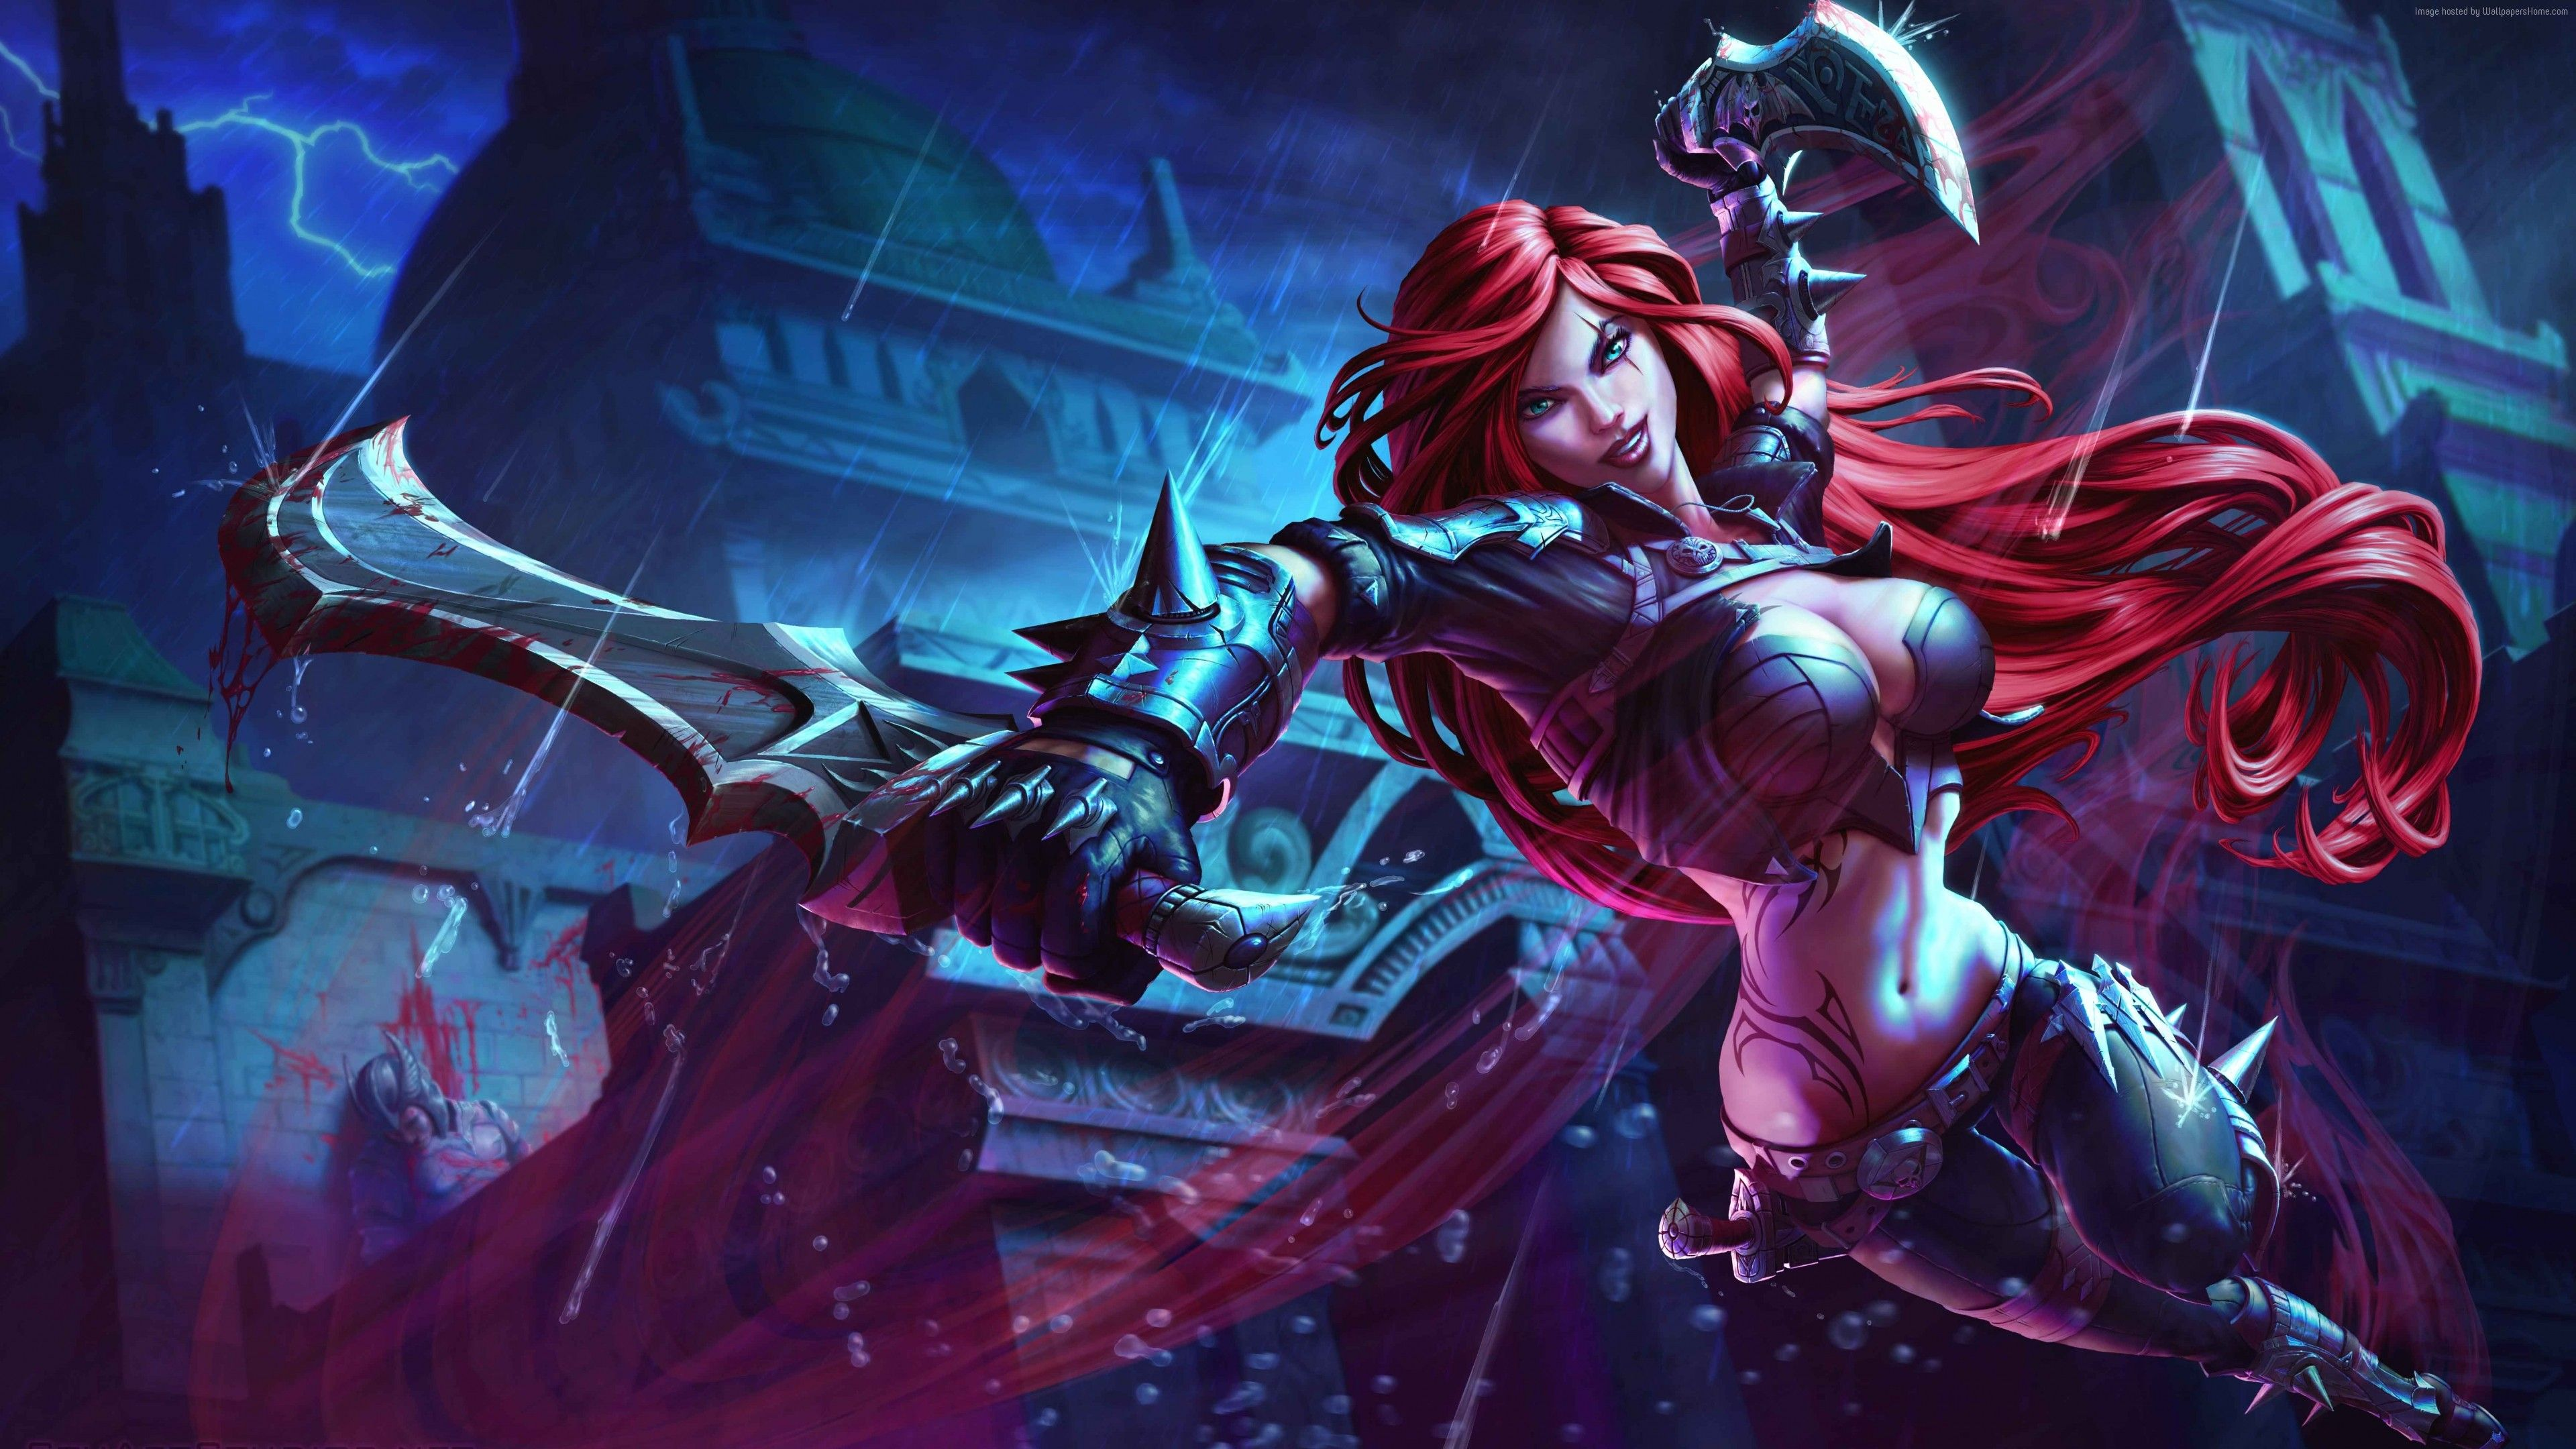 League Of Legends Game Lol Moba Katarina Warrior Sword Red